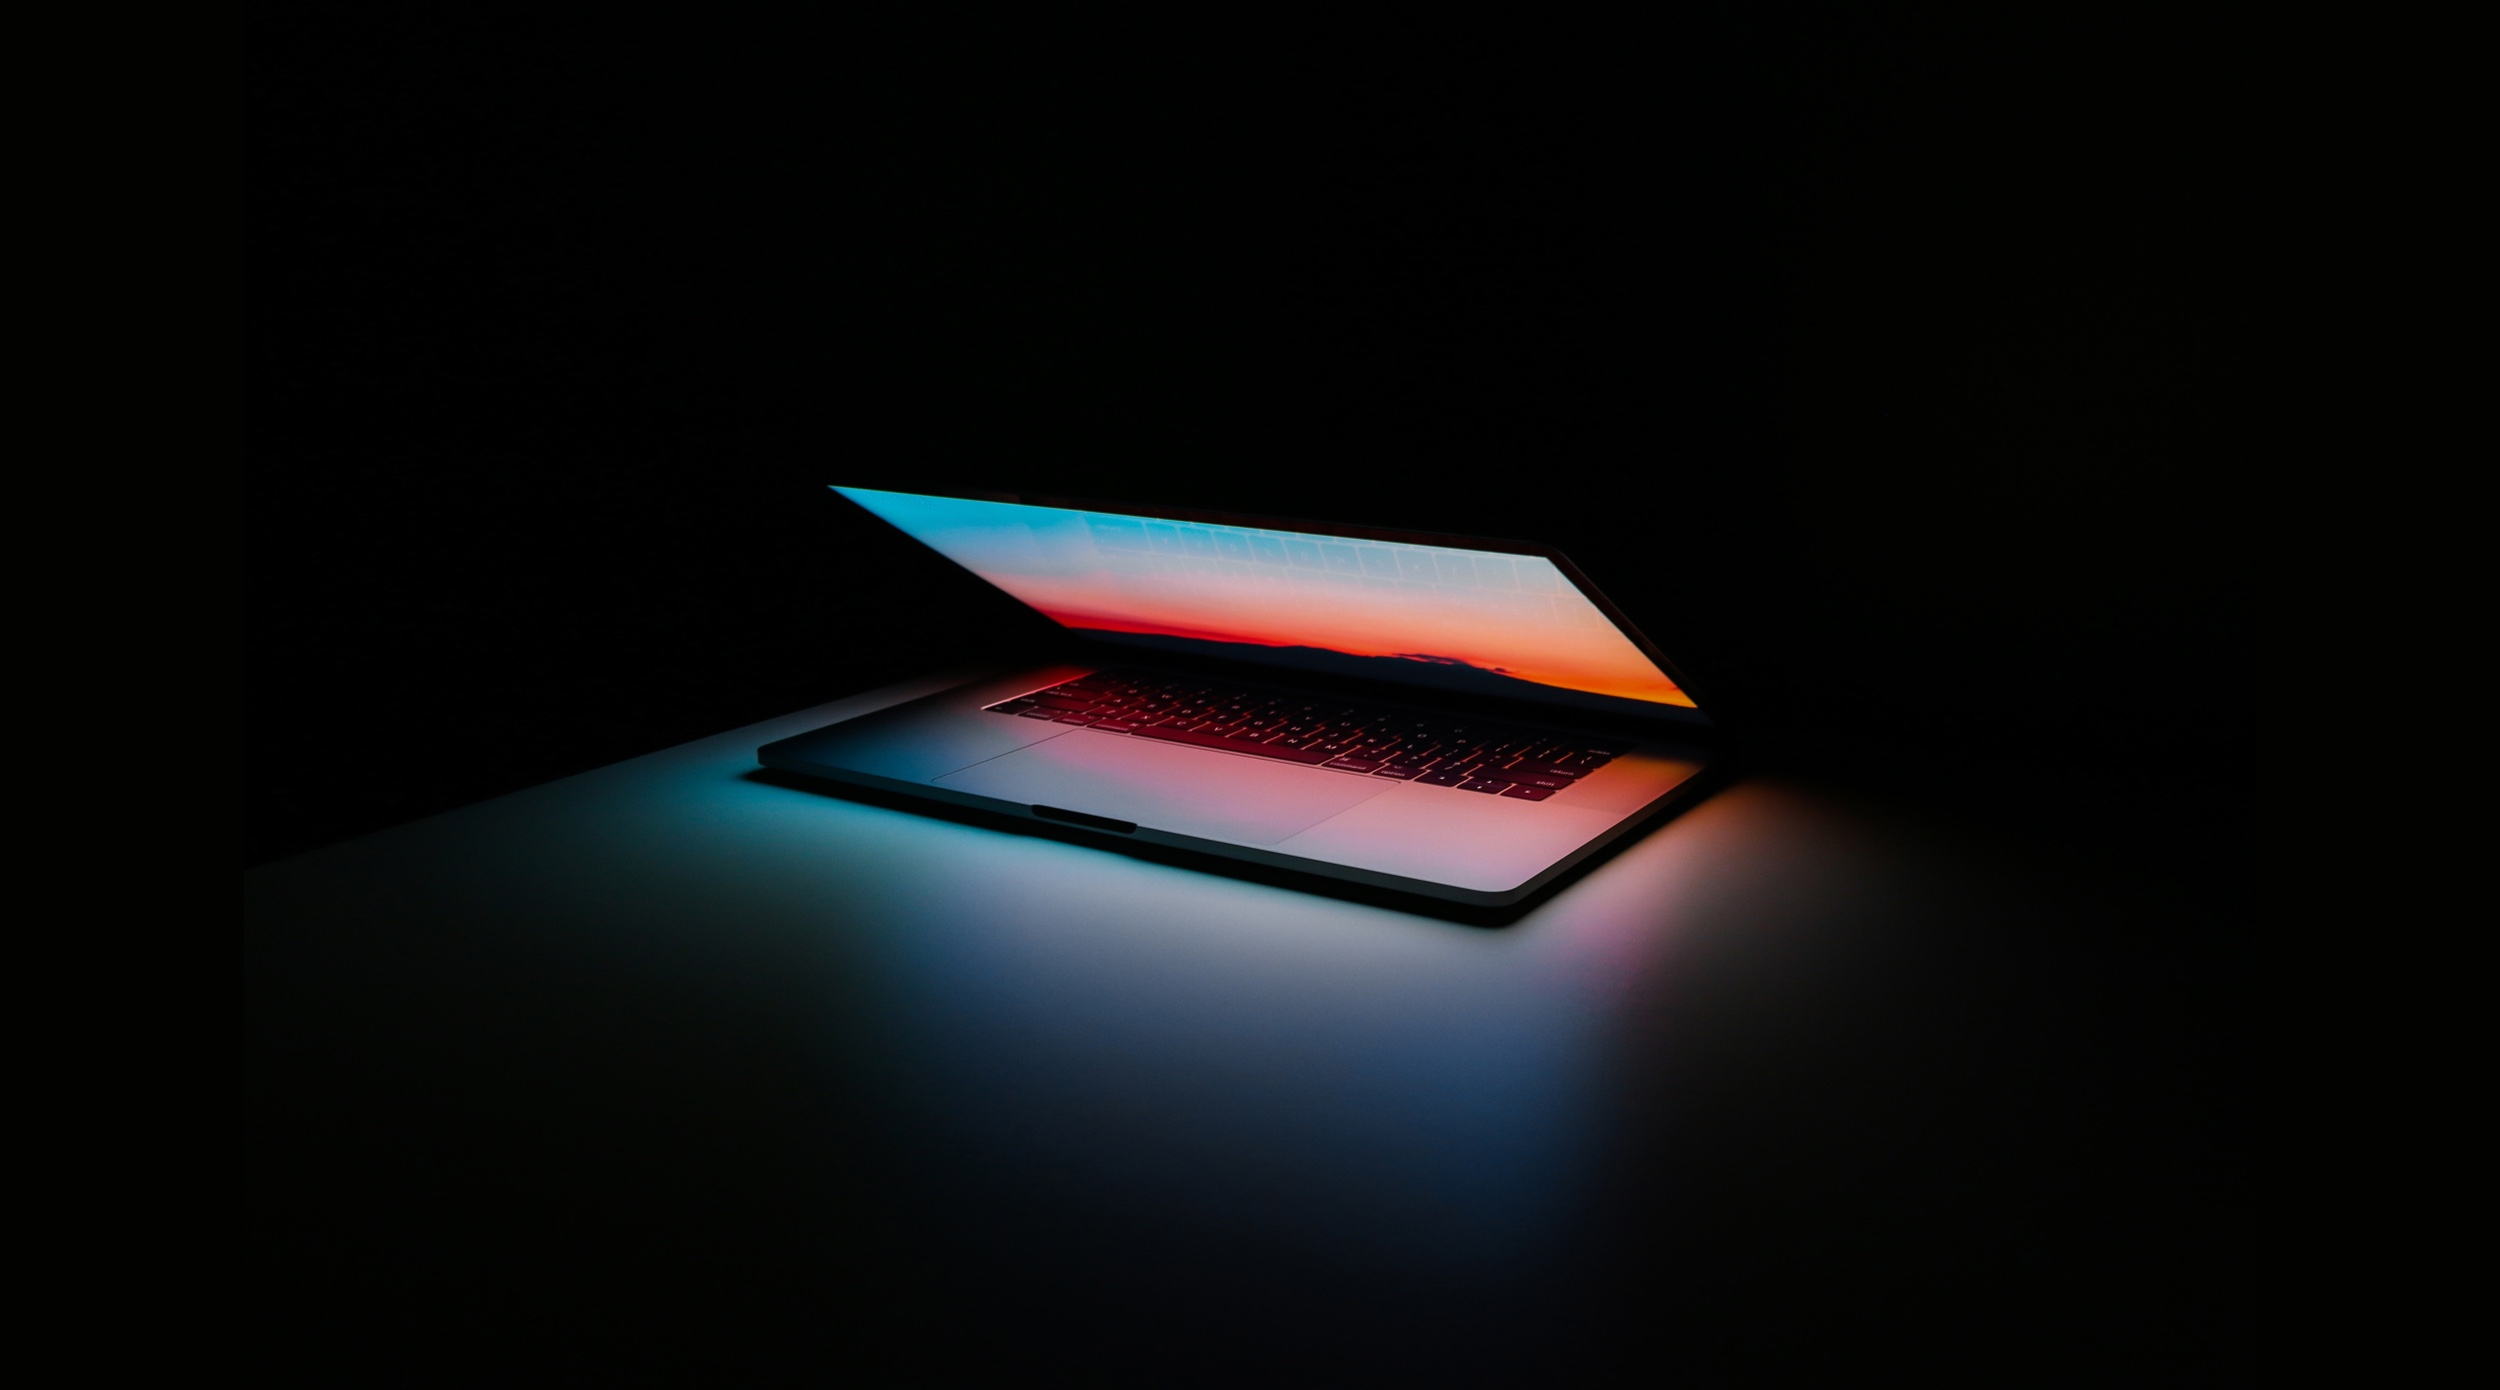 Laptop open and ominously glowing against a dark background.